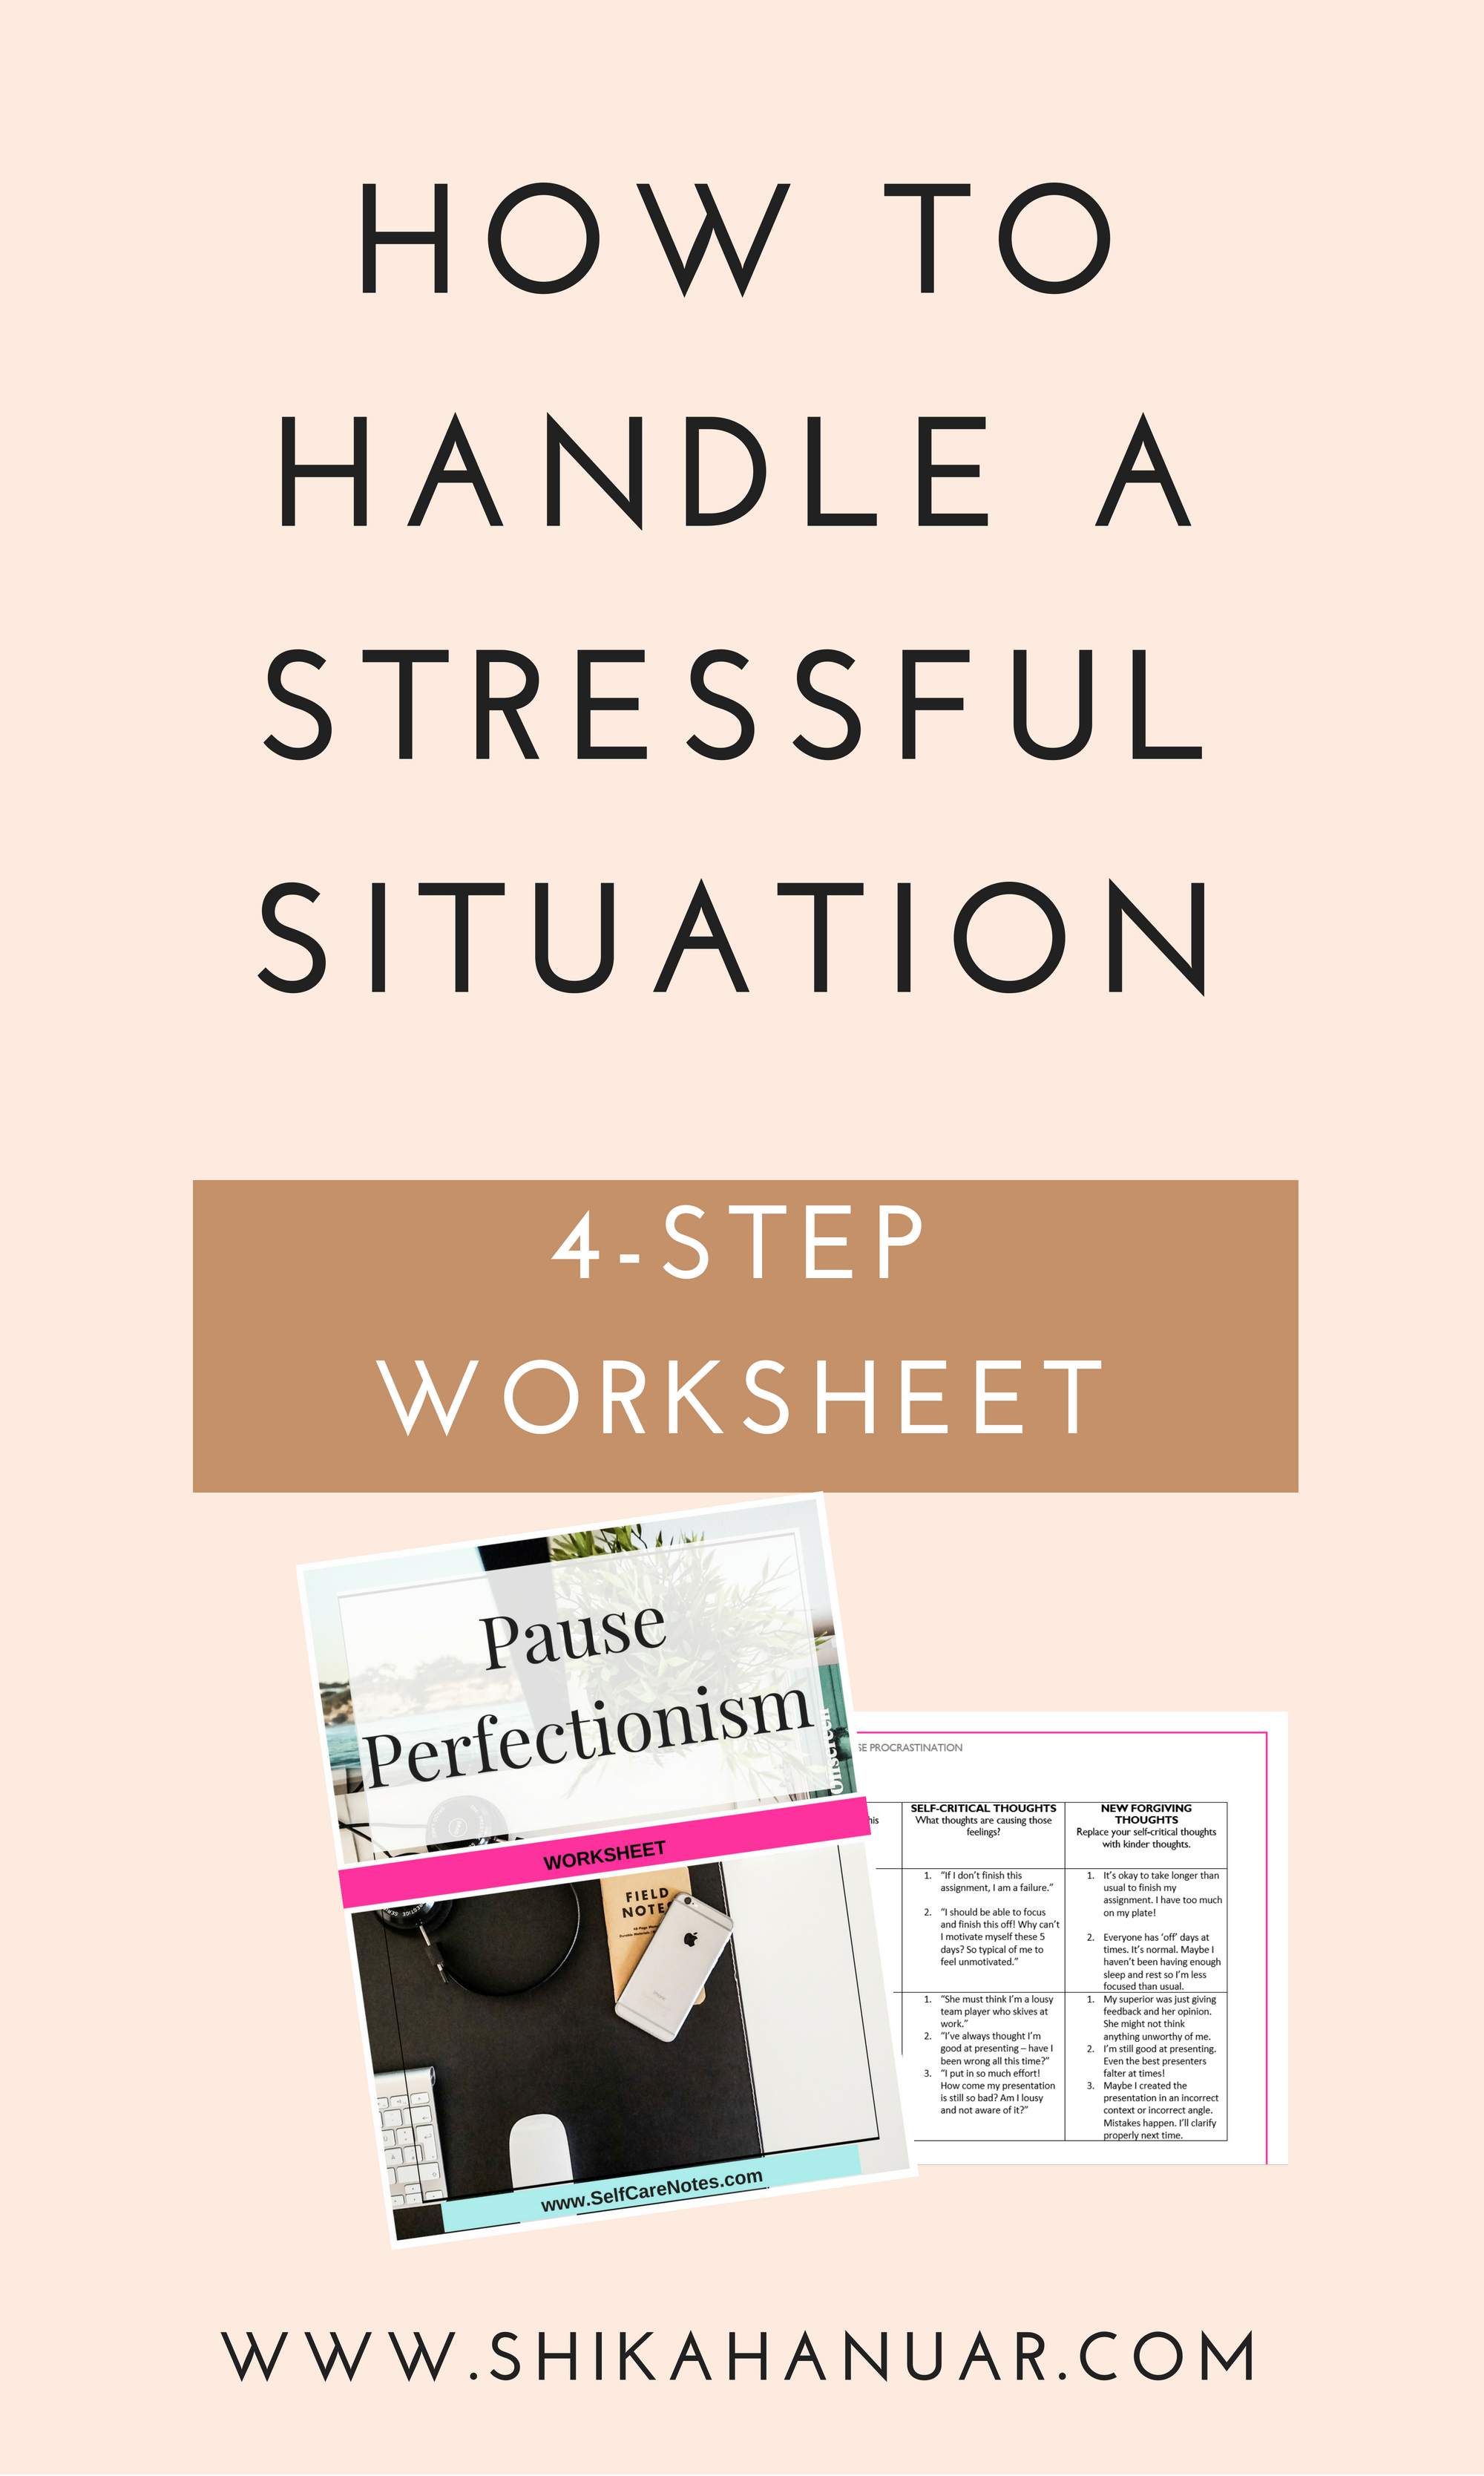 How to Handle A Stressful Situation Worksheet